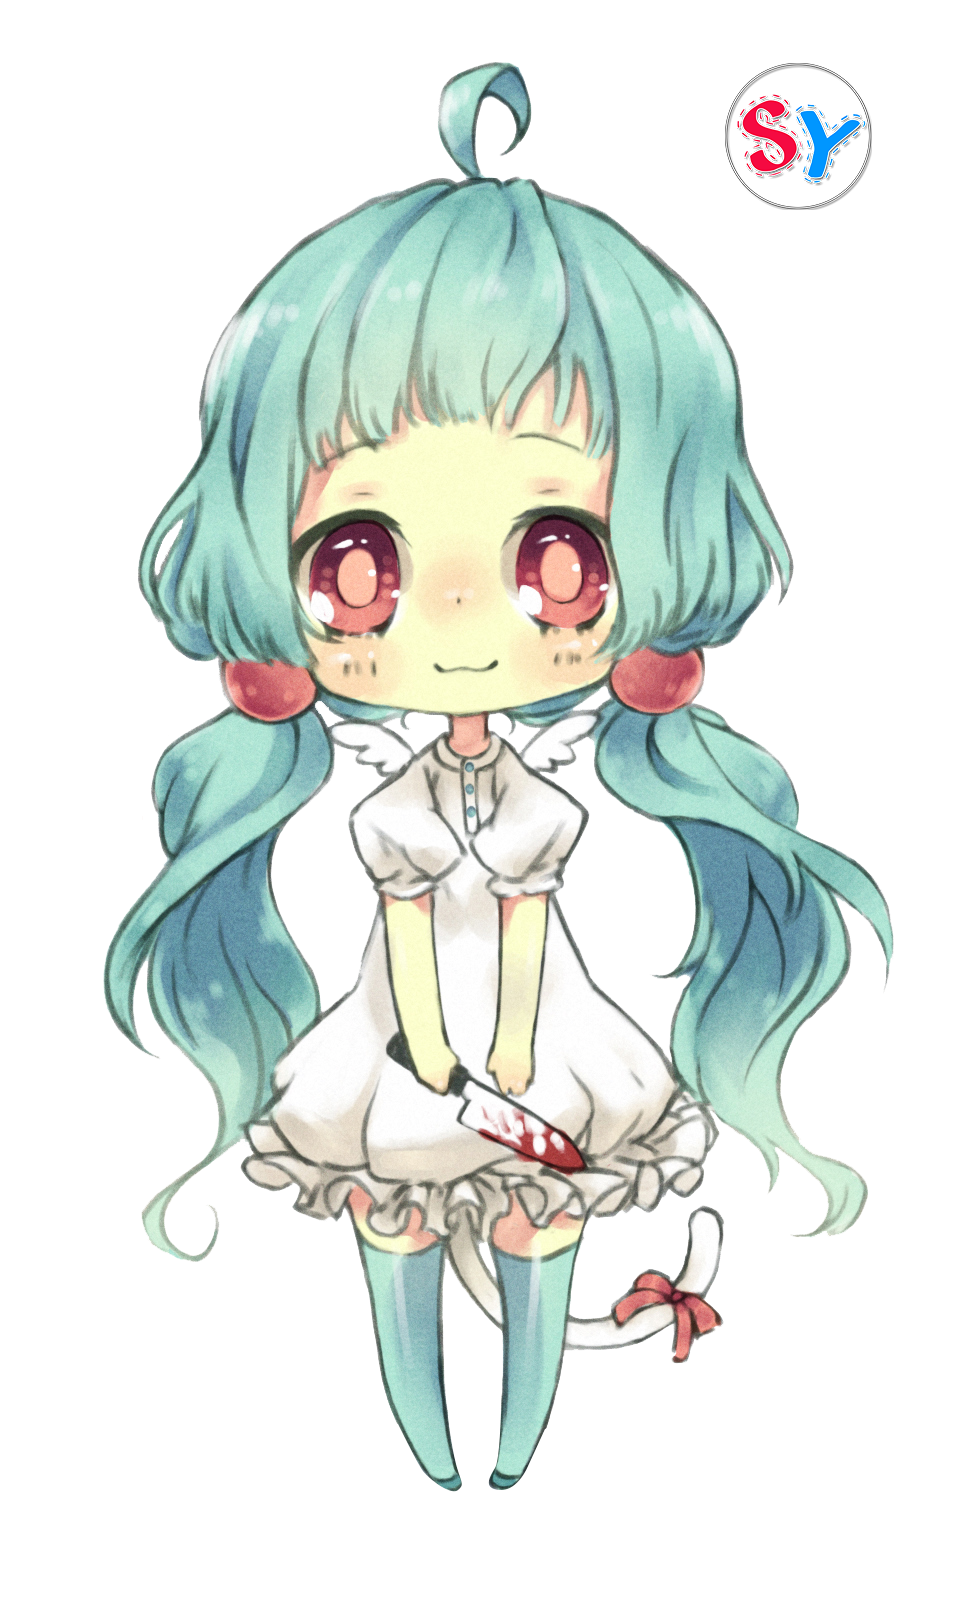 Chibi girl png. Ninapon render blue hair